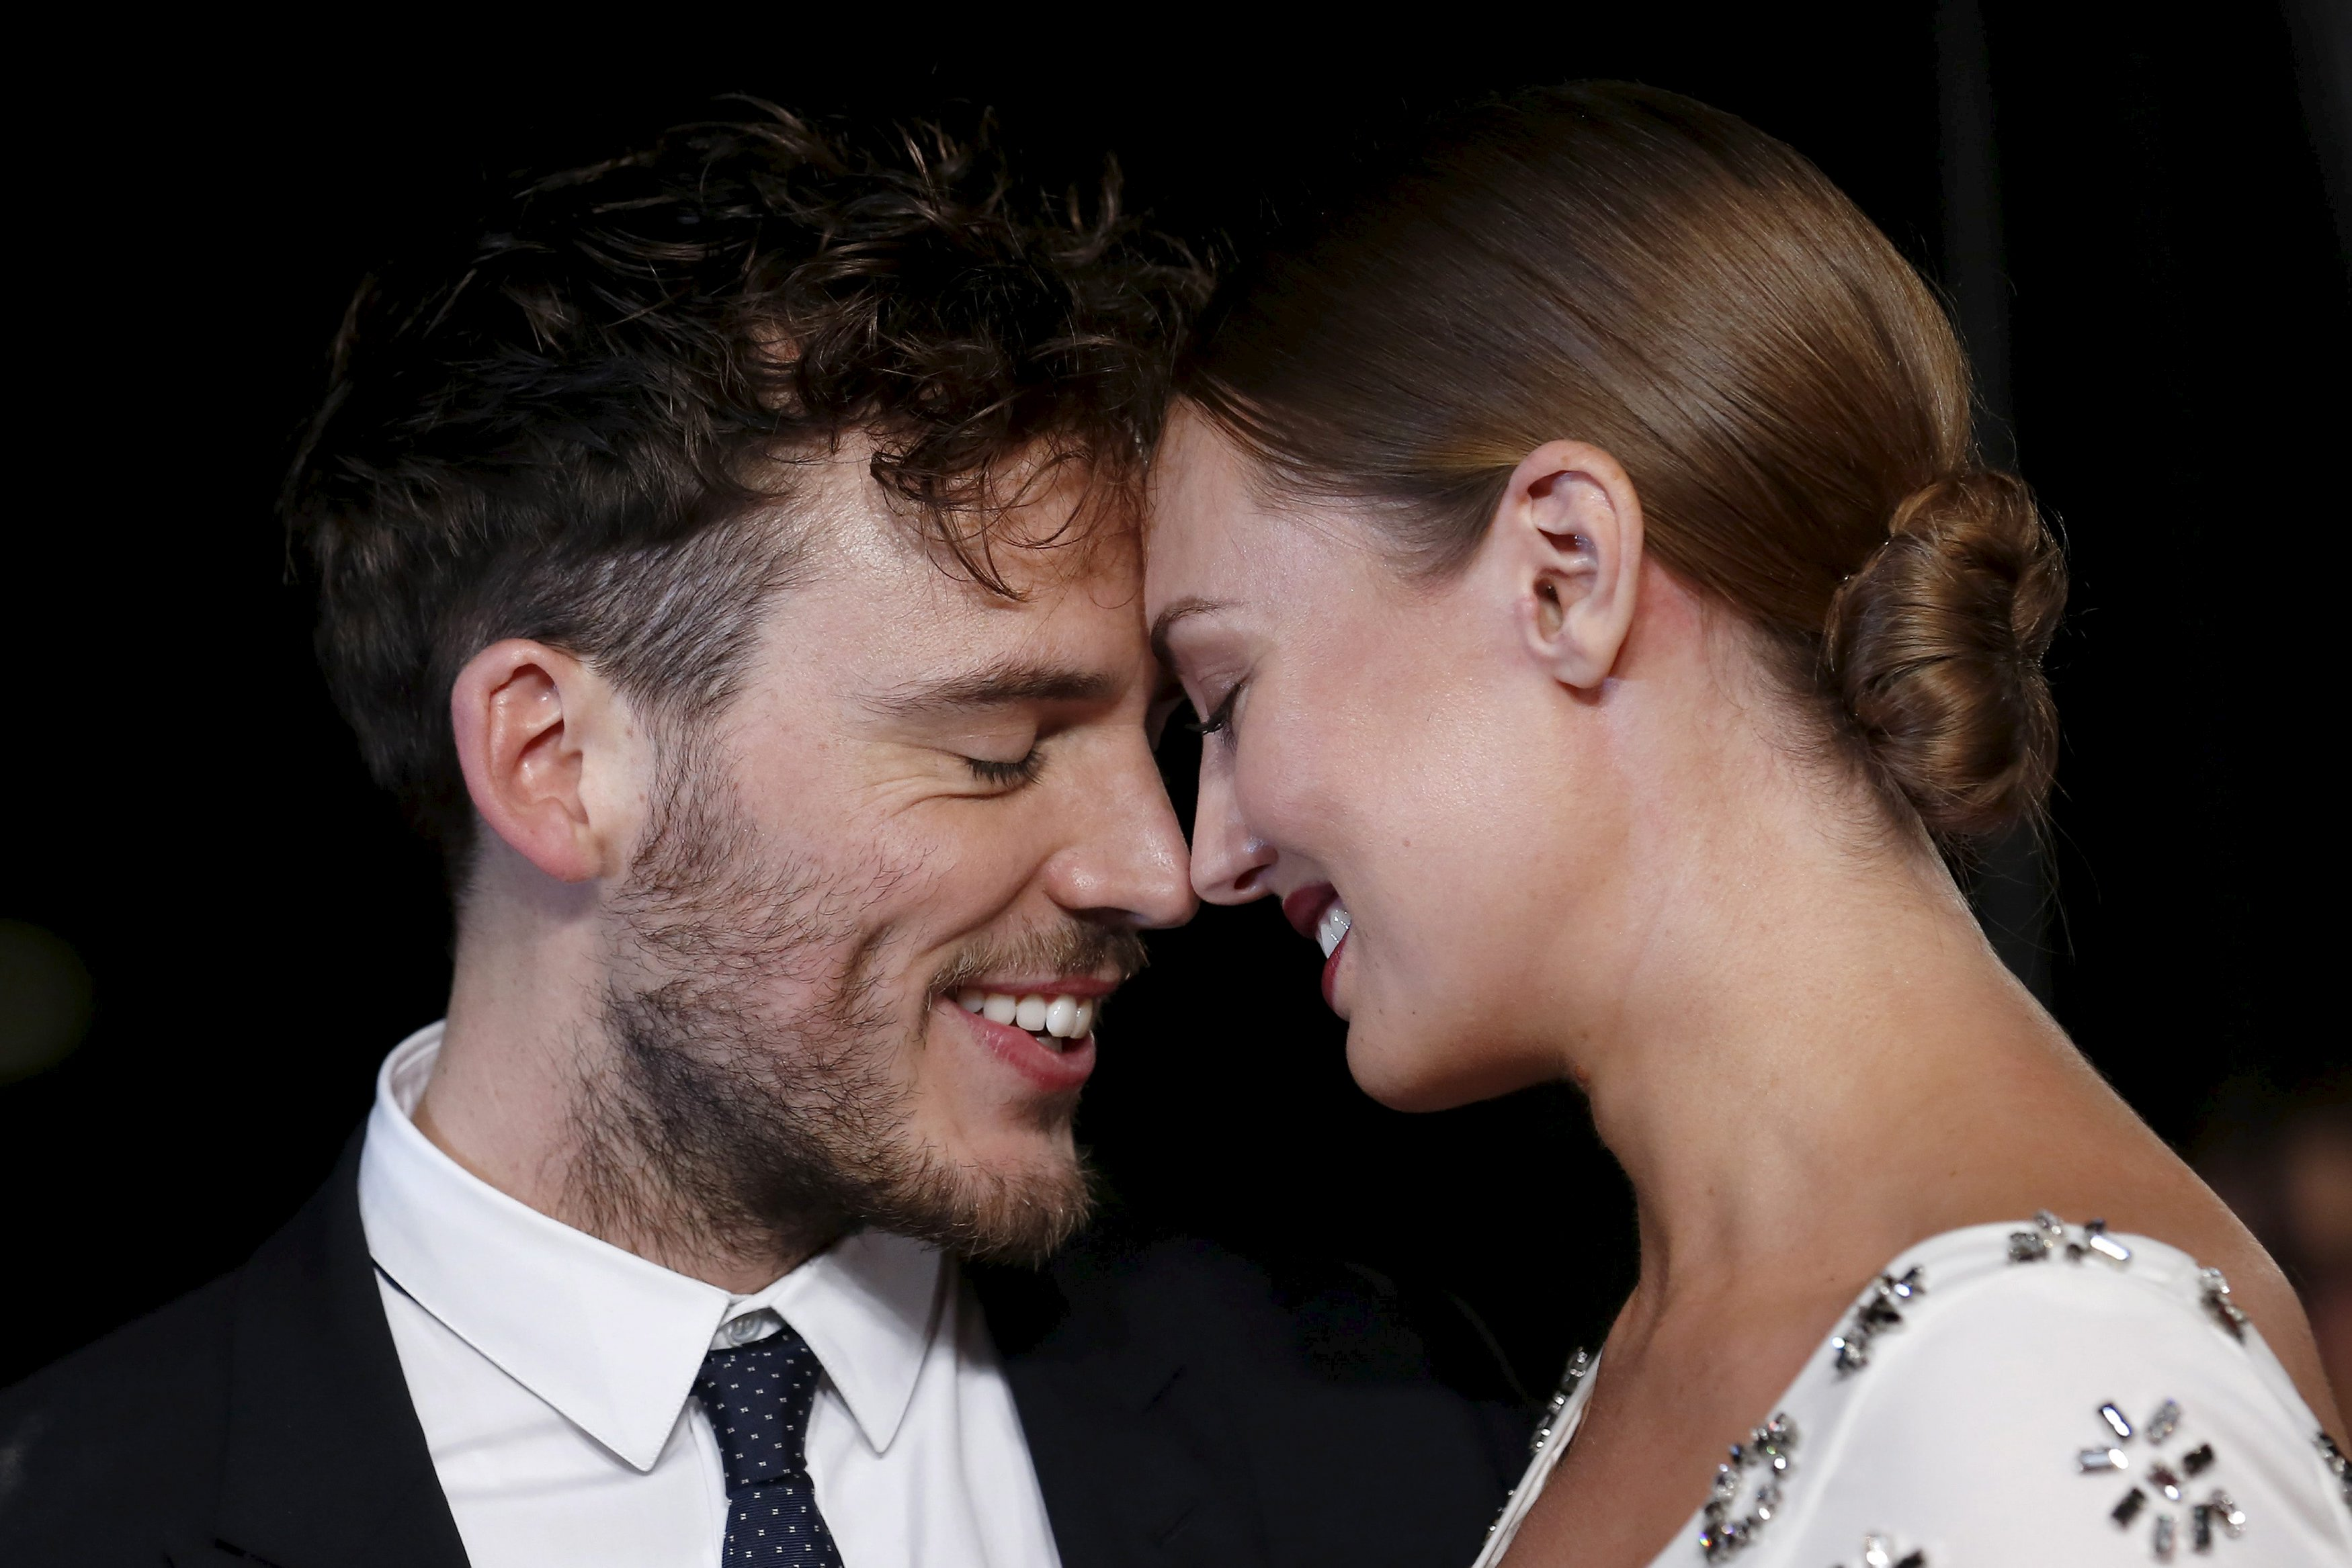 The Hunger Games: Mockingjay – Part 2 star Sam Claflin goes gooey over his pregnant wife at film premiere